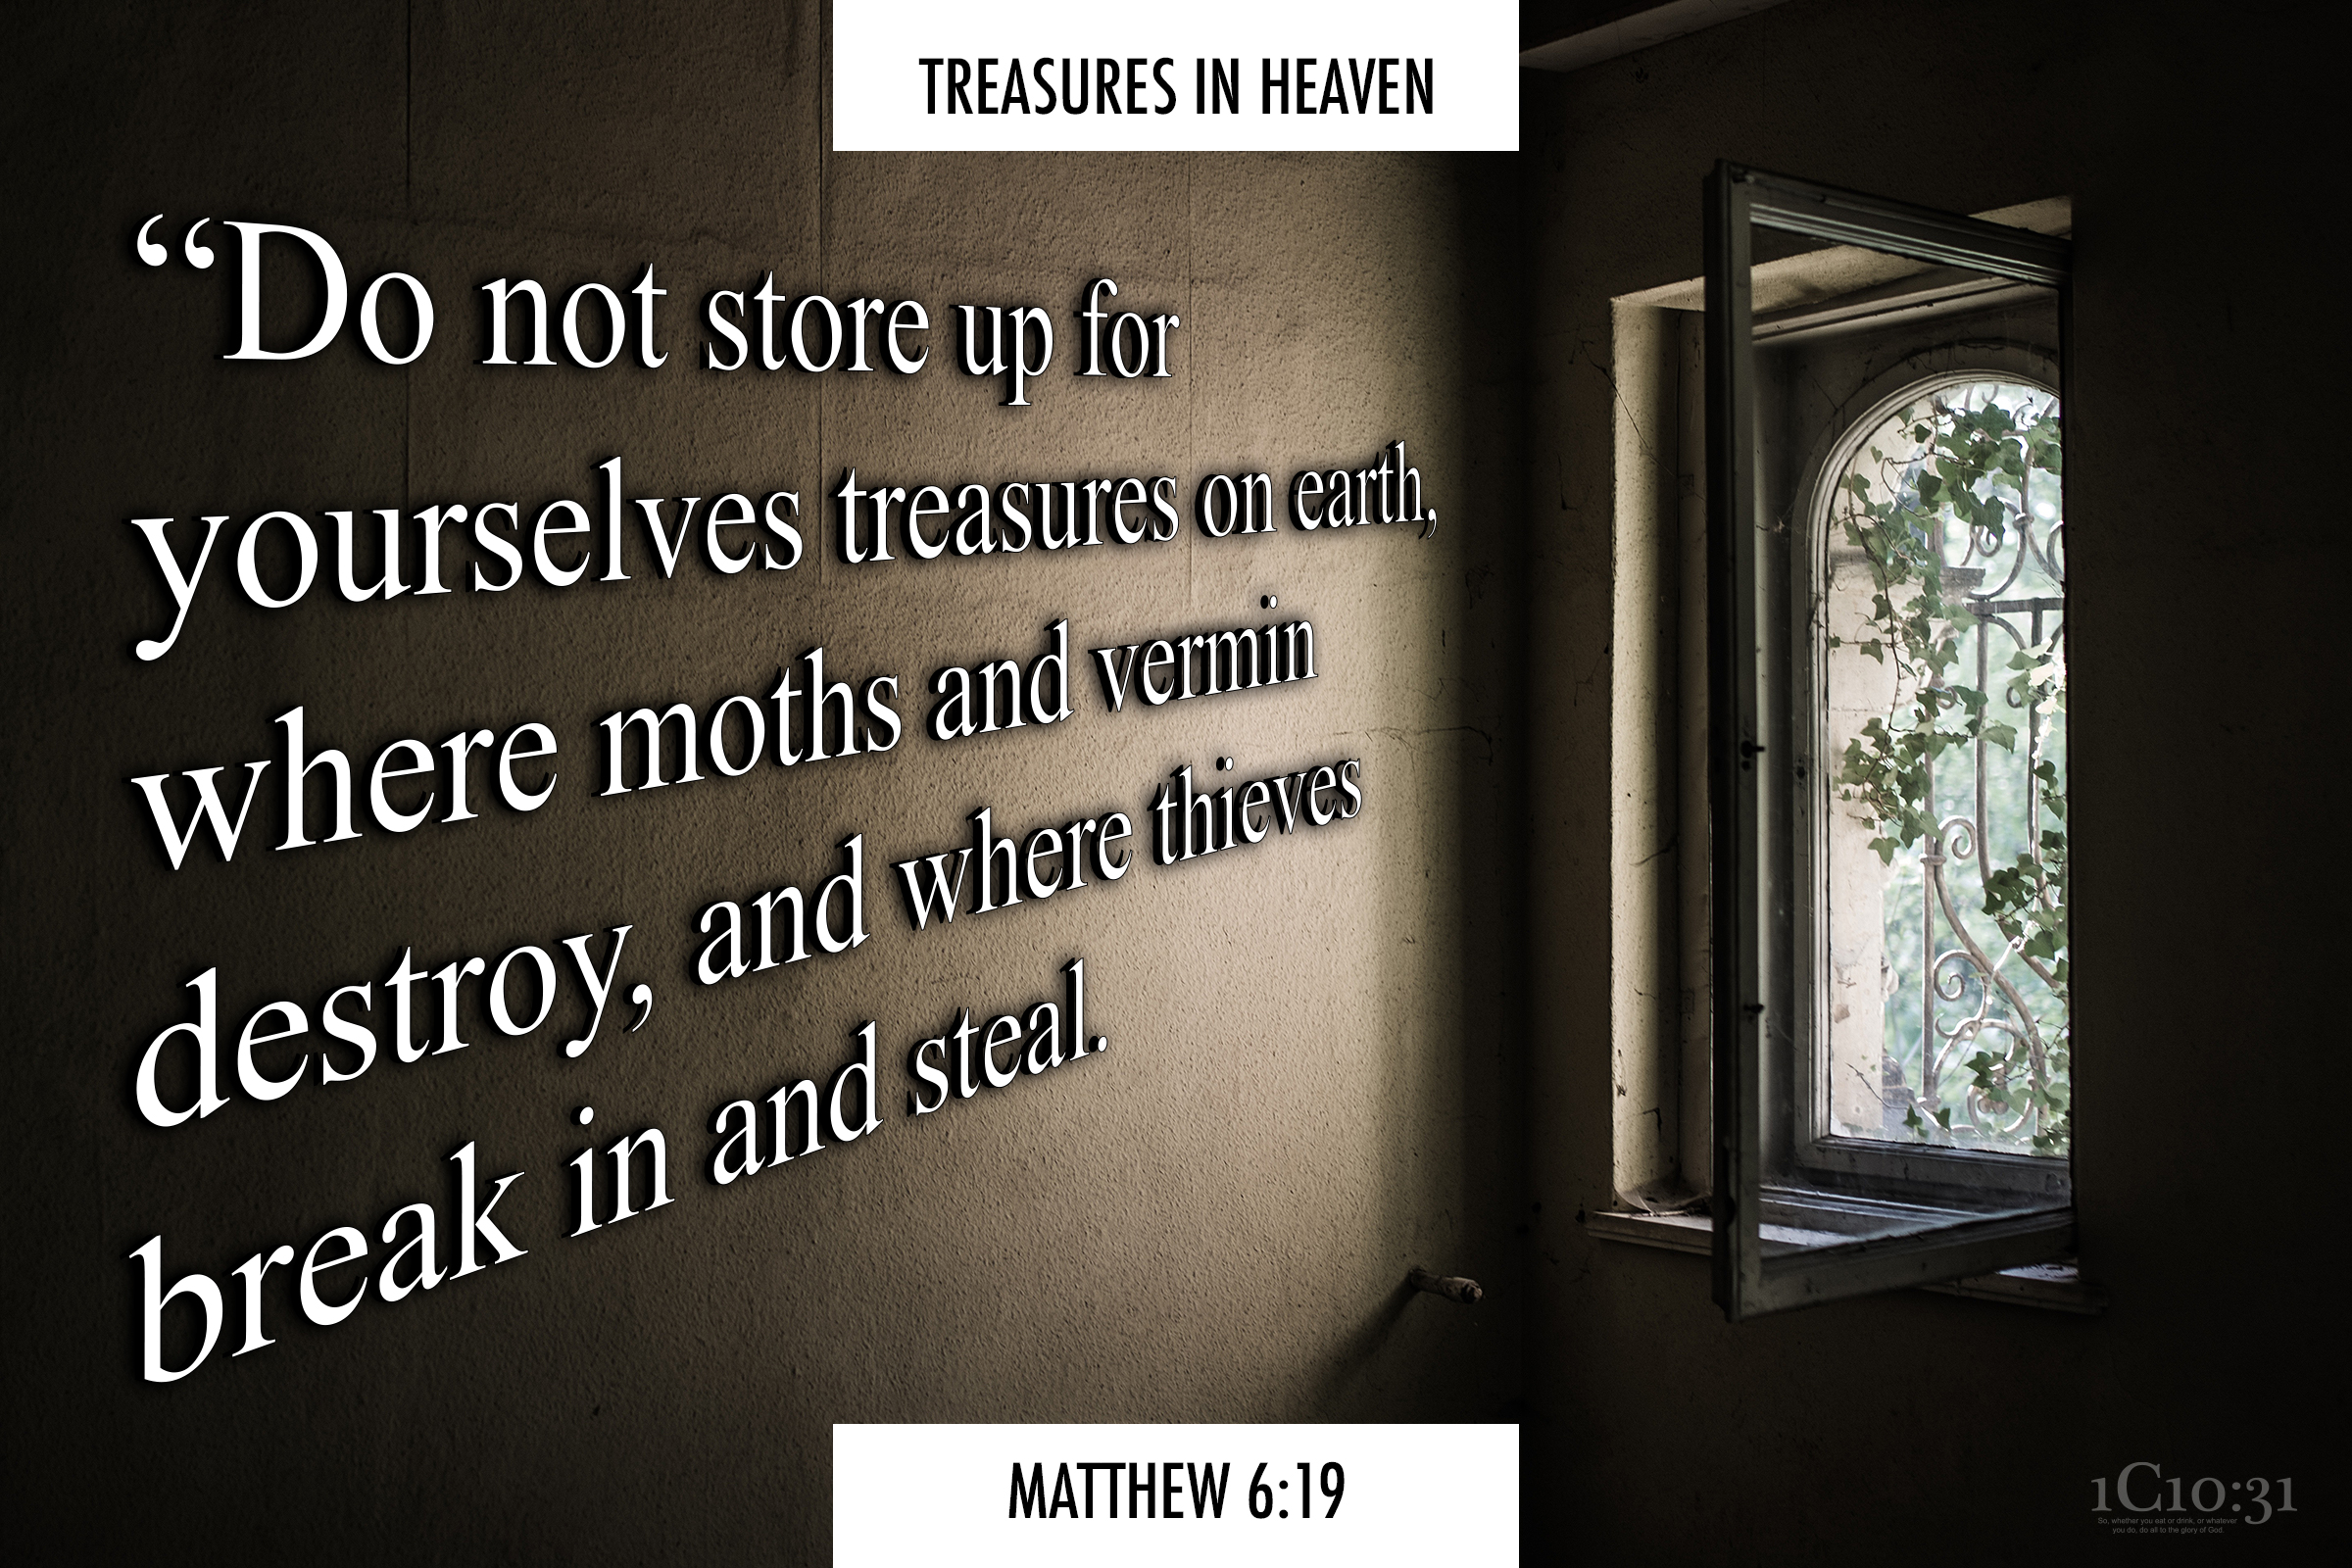 """Matthew 6:19 """"Do not store up for yourselves treasures on earth, where moths and vermin destroy, and where thieves break in and steal."""